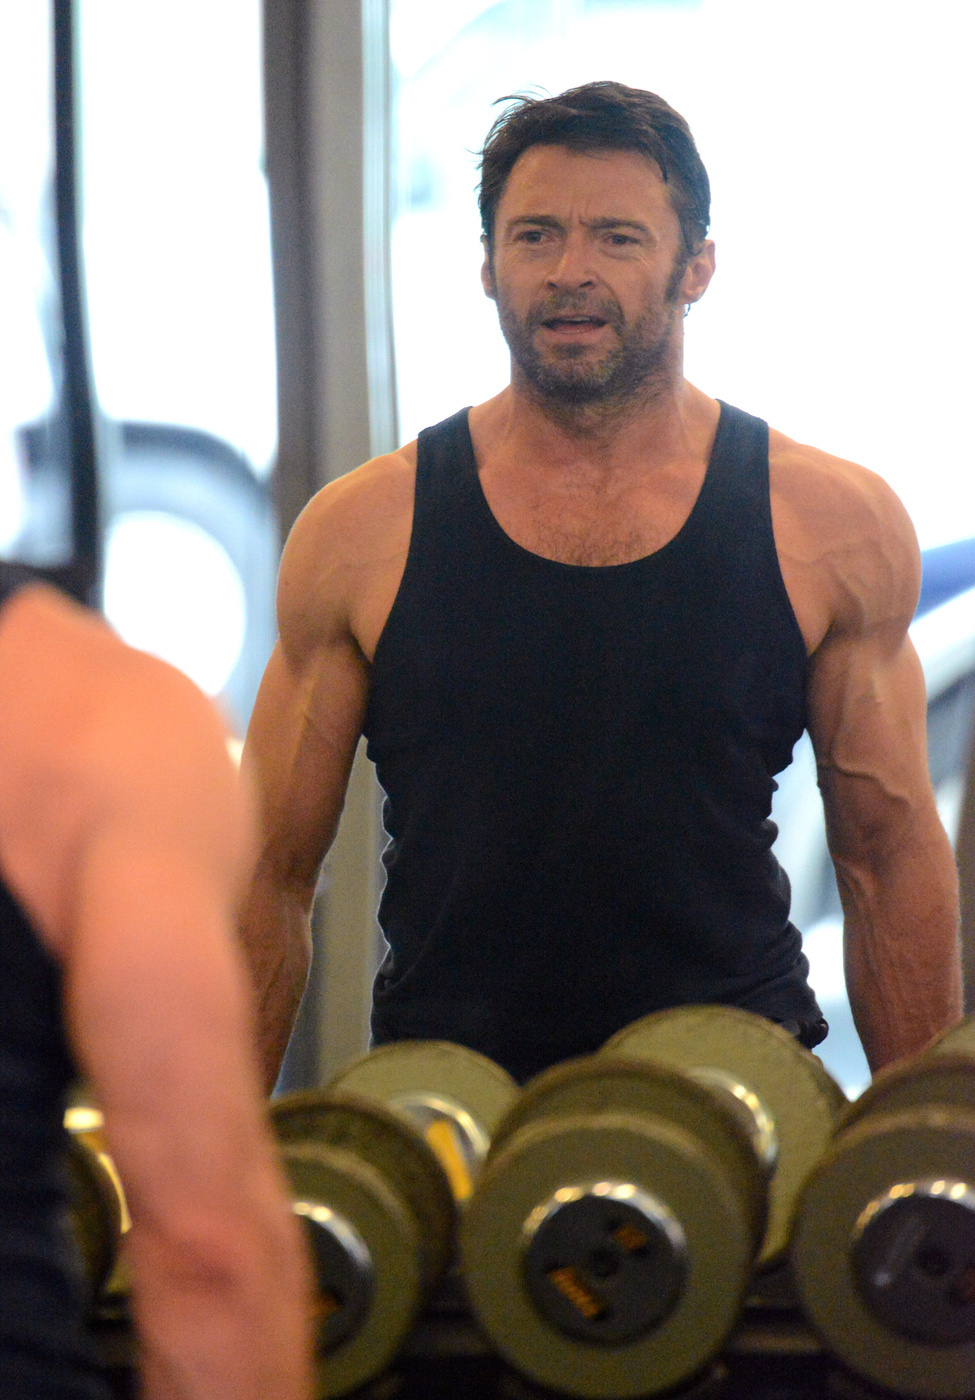 hugh jackman working out